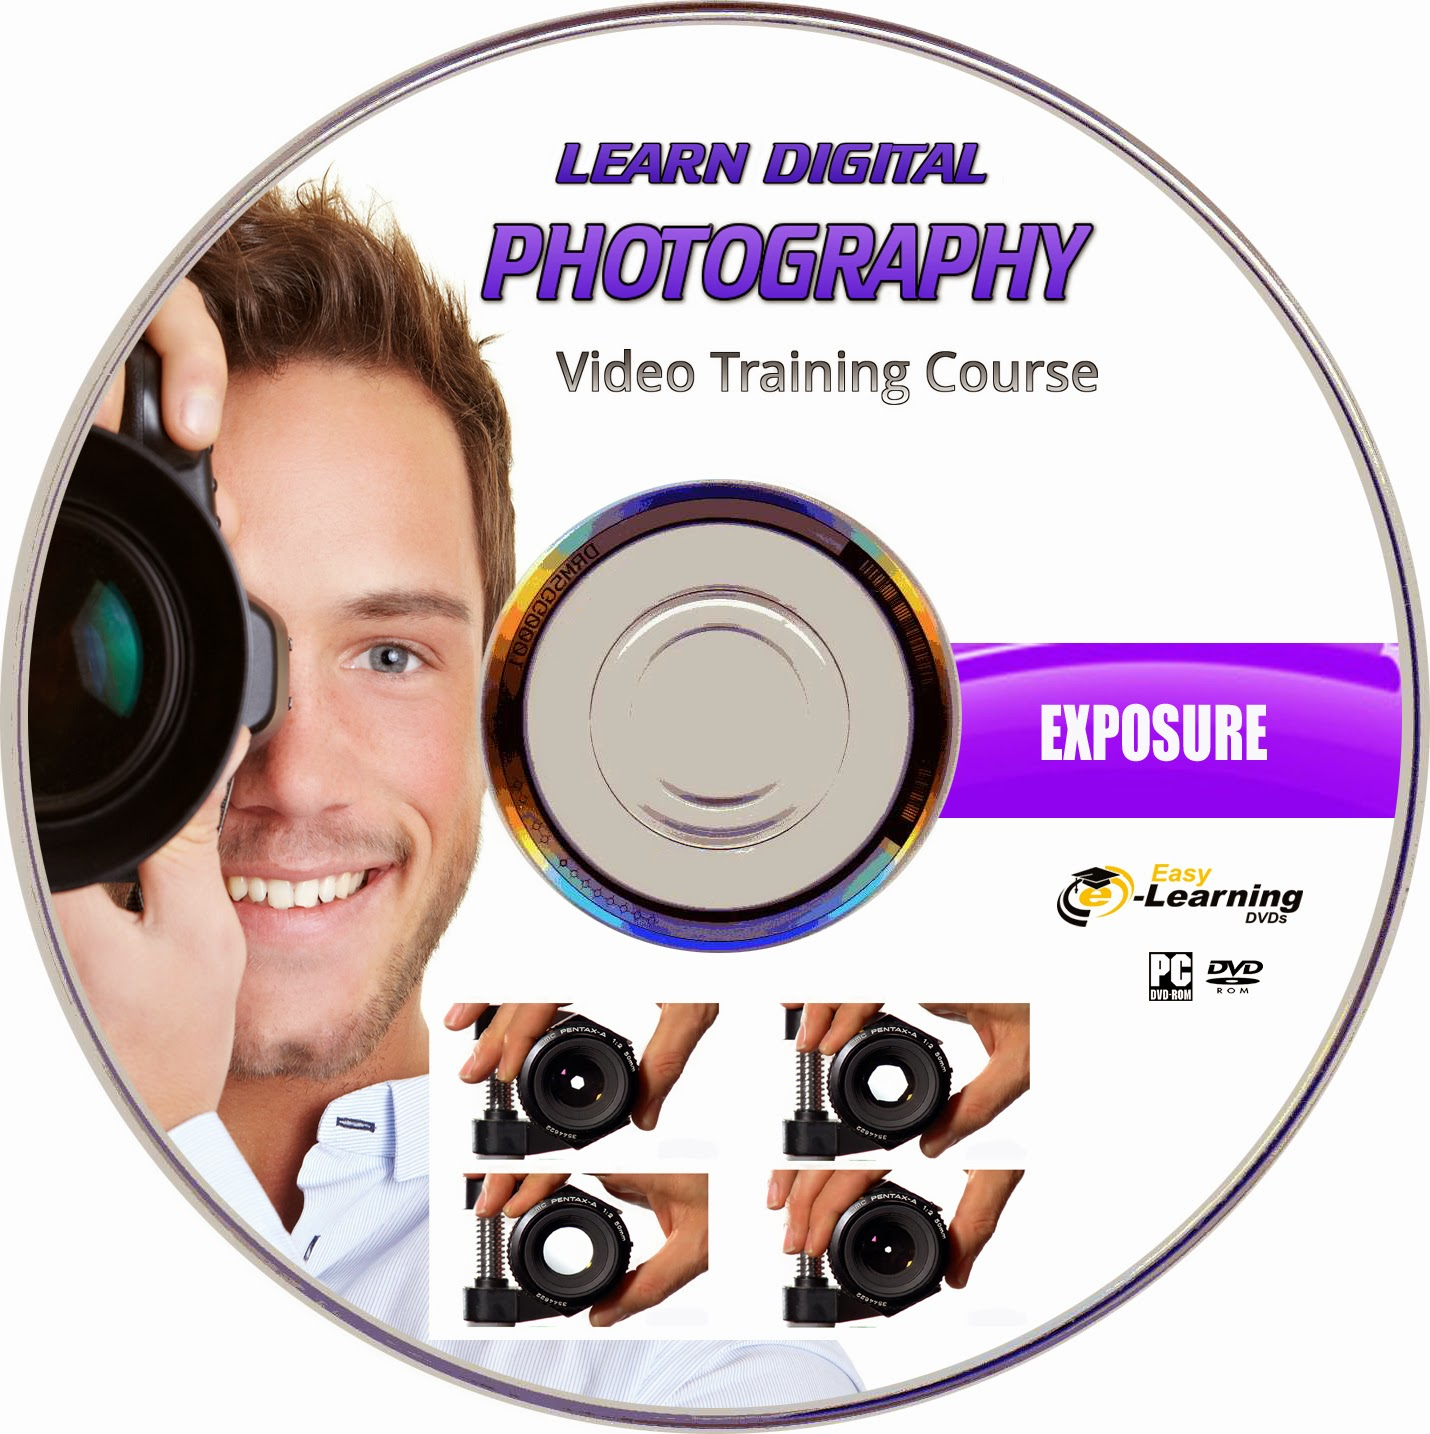 Studio Lighting Course: Easy Learning DVDs: LEARN DIGITAL PHOTOGRAPHY COMPLETE